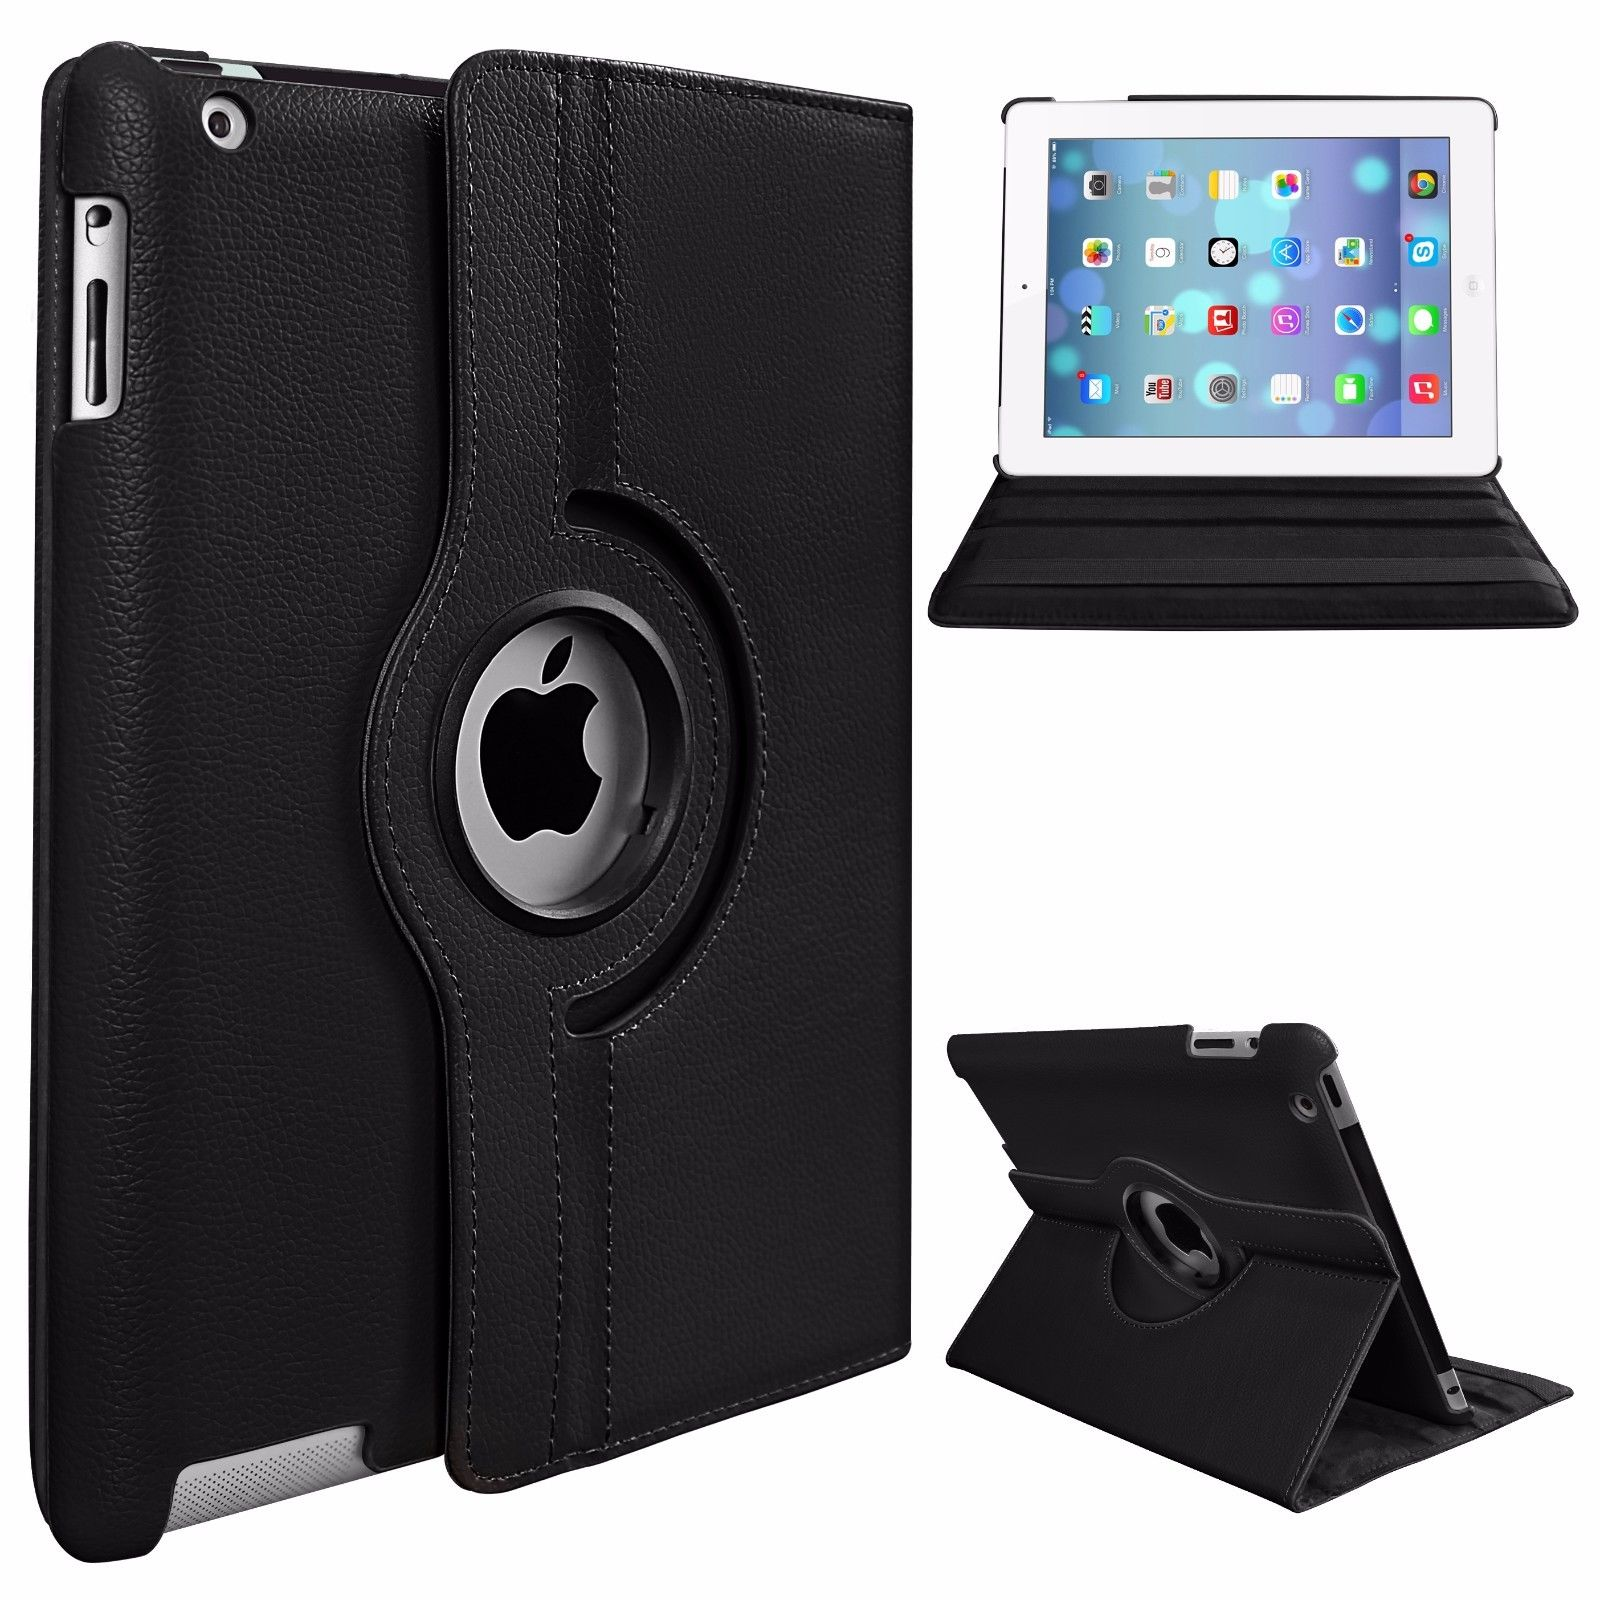 360 Degree Rotating Stand PU Leather Case Cover for Apple iPad2 iPad3 iPad4 - 15805541 , 2625313640606 , 62_31268366 , 174000 , 360-Degree-Rotating-Stand-PU-Leather-Case-Cover-for-Apple-iPad2-iPad3-iPad4-62_31268366 , tiki.vn , 360 Degree Rotating Stand PU Leather Case Cover for Apple iPad2 iPad3 iPad4